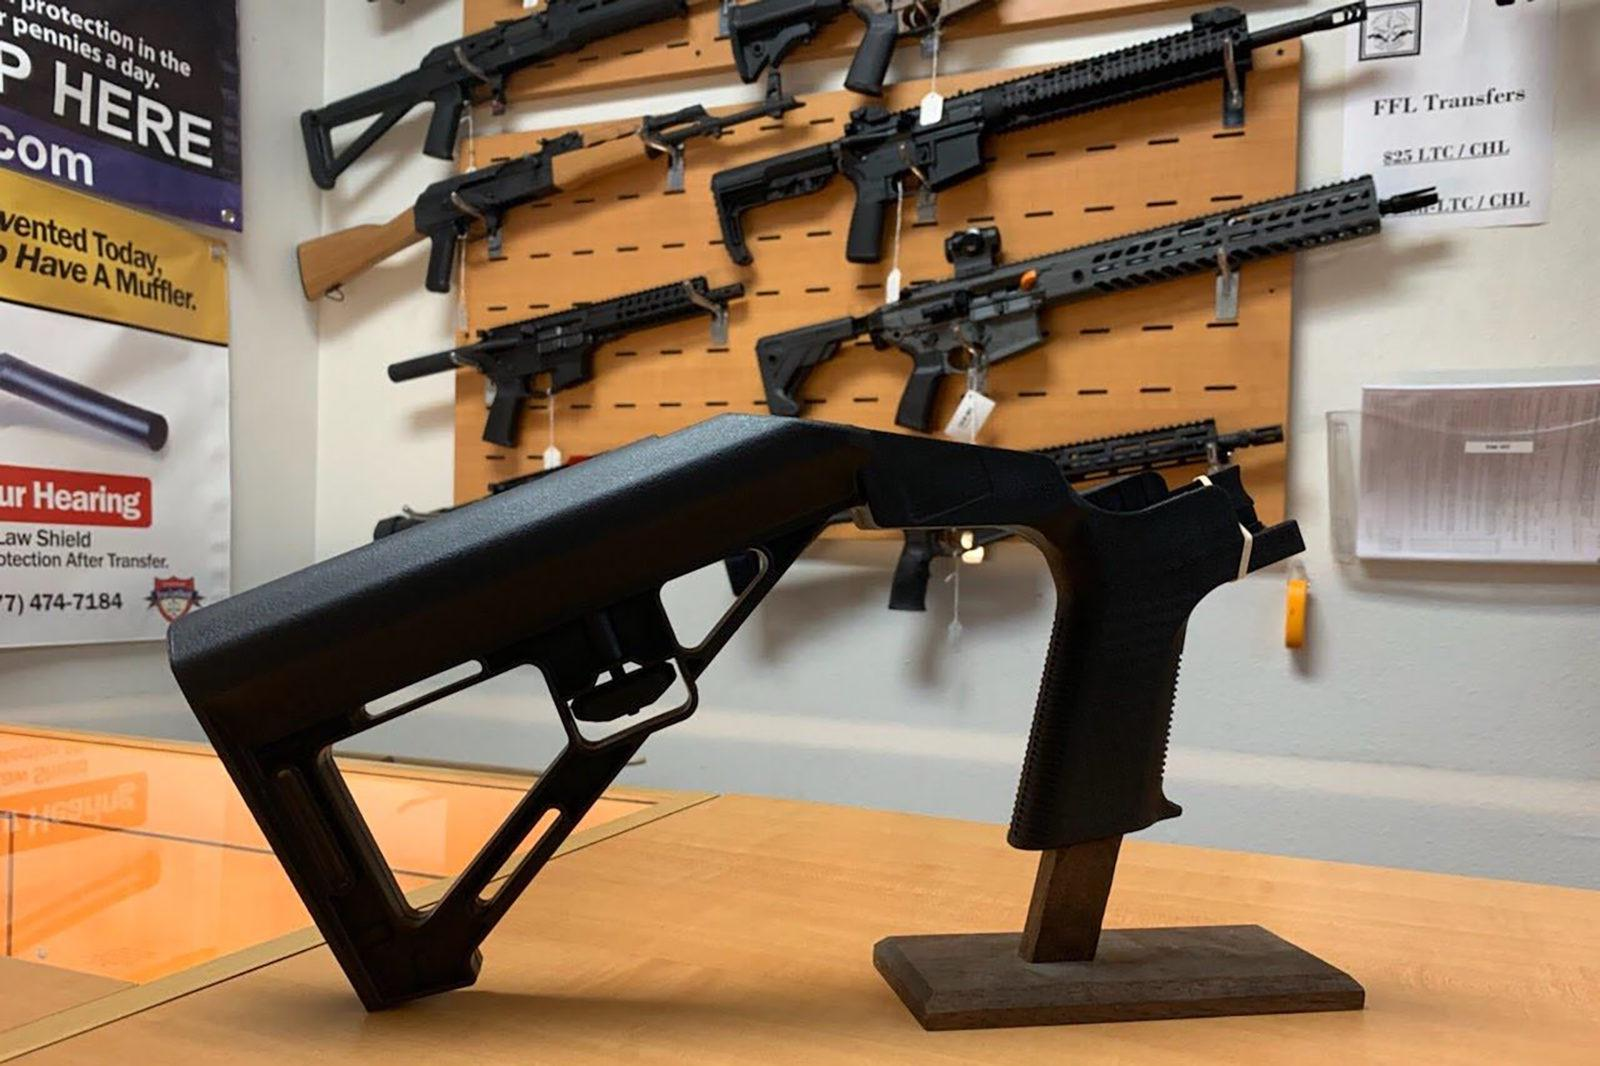 4de330281235b Bump stocks harness a gun's recoil to speed up the rate of fire. Ten states  banned the plastic attachments in the wake of a 2017 mass shooting in Las  Vegas.